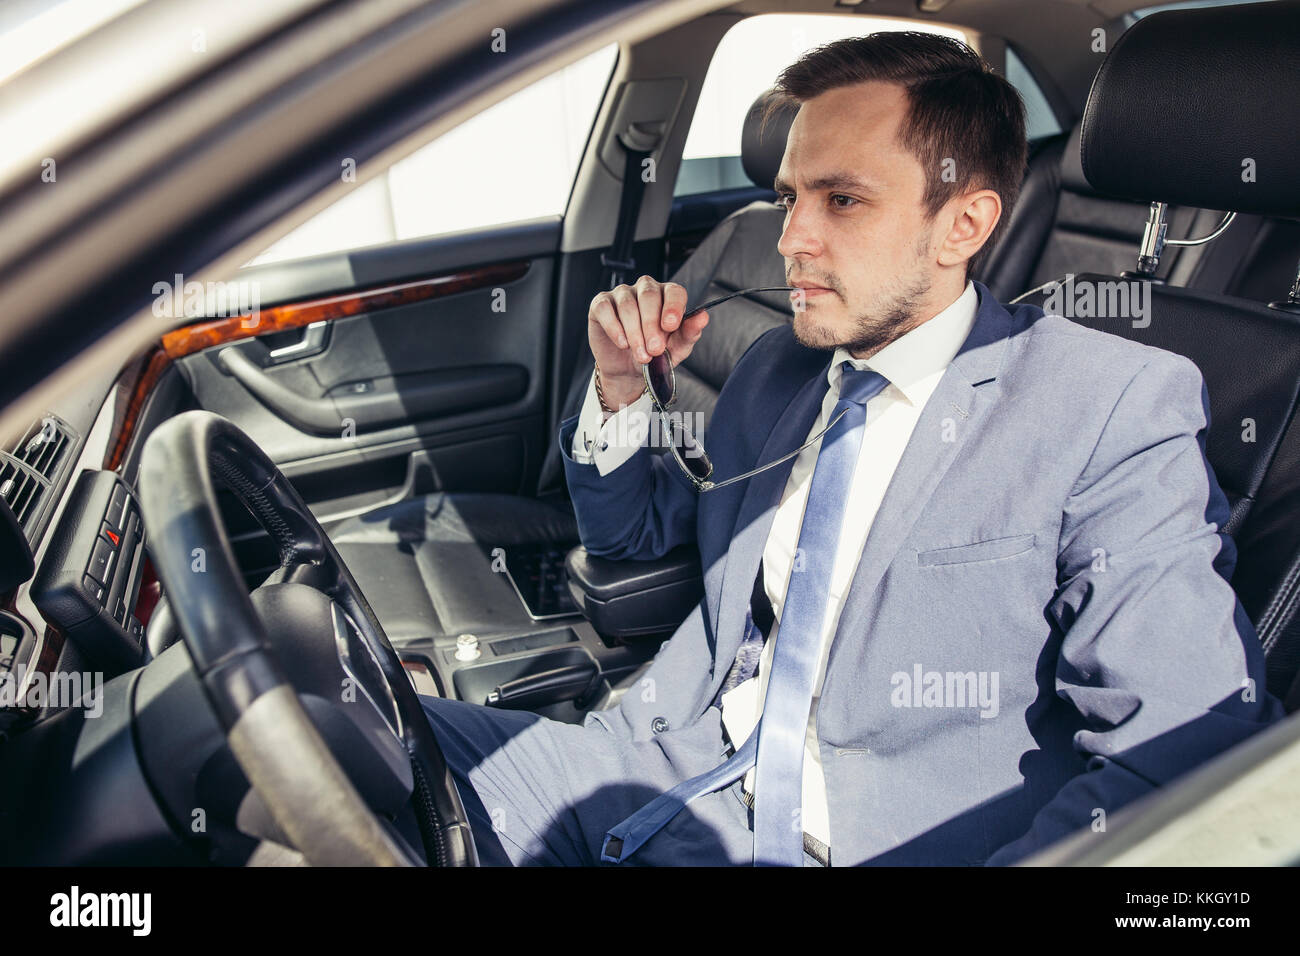 Attractive handsome elegant man in a business suit driving an expensive car - Stock Image